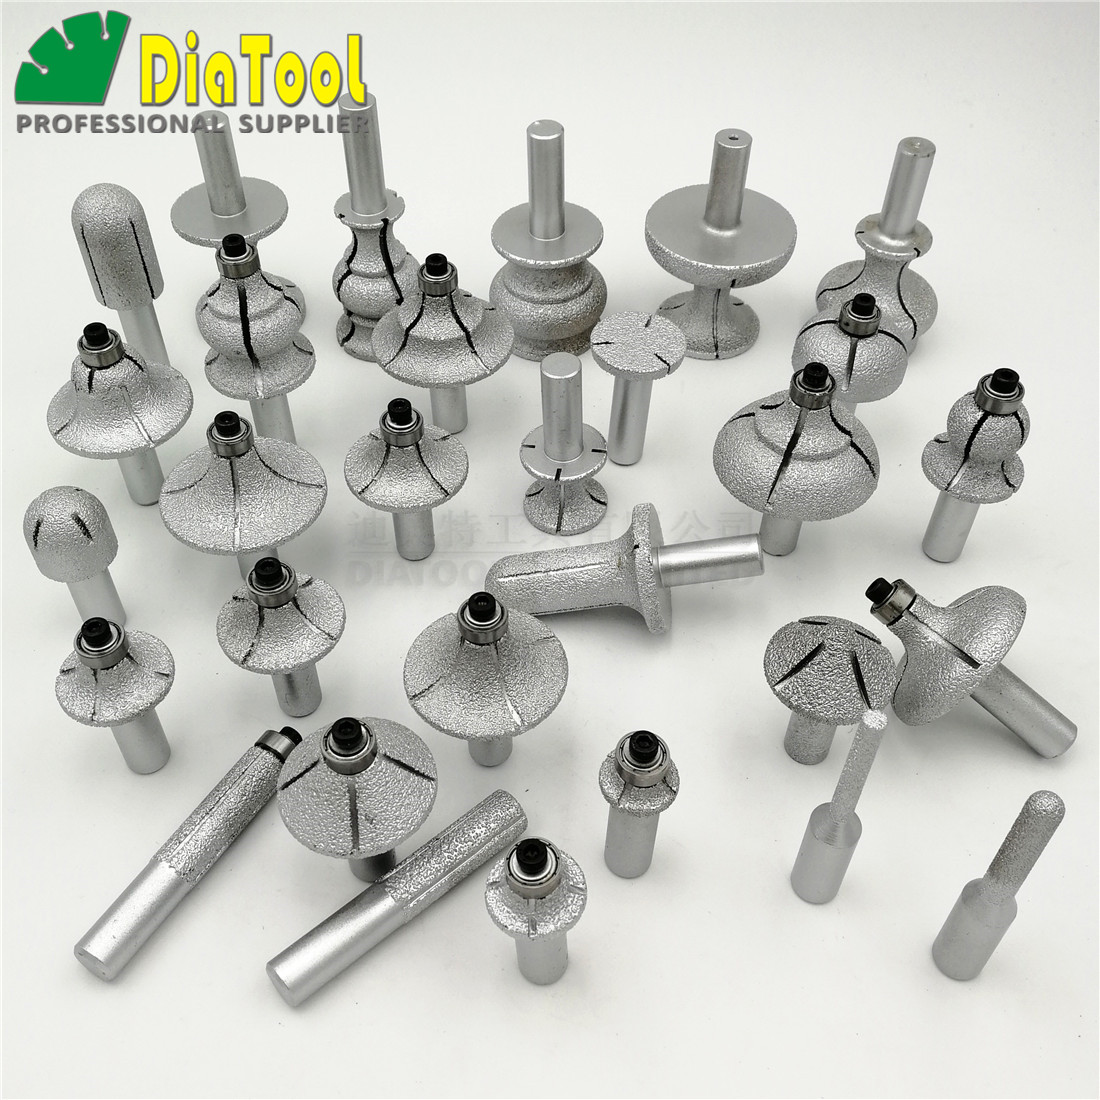 Abrasive Tools Hearty Shdiatool 1pc Vacuum Brazed Diamond Router Bits With 1/2 Shank For Stone Router Cutter For Granite & Marble In Pain